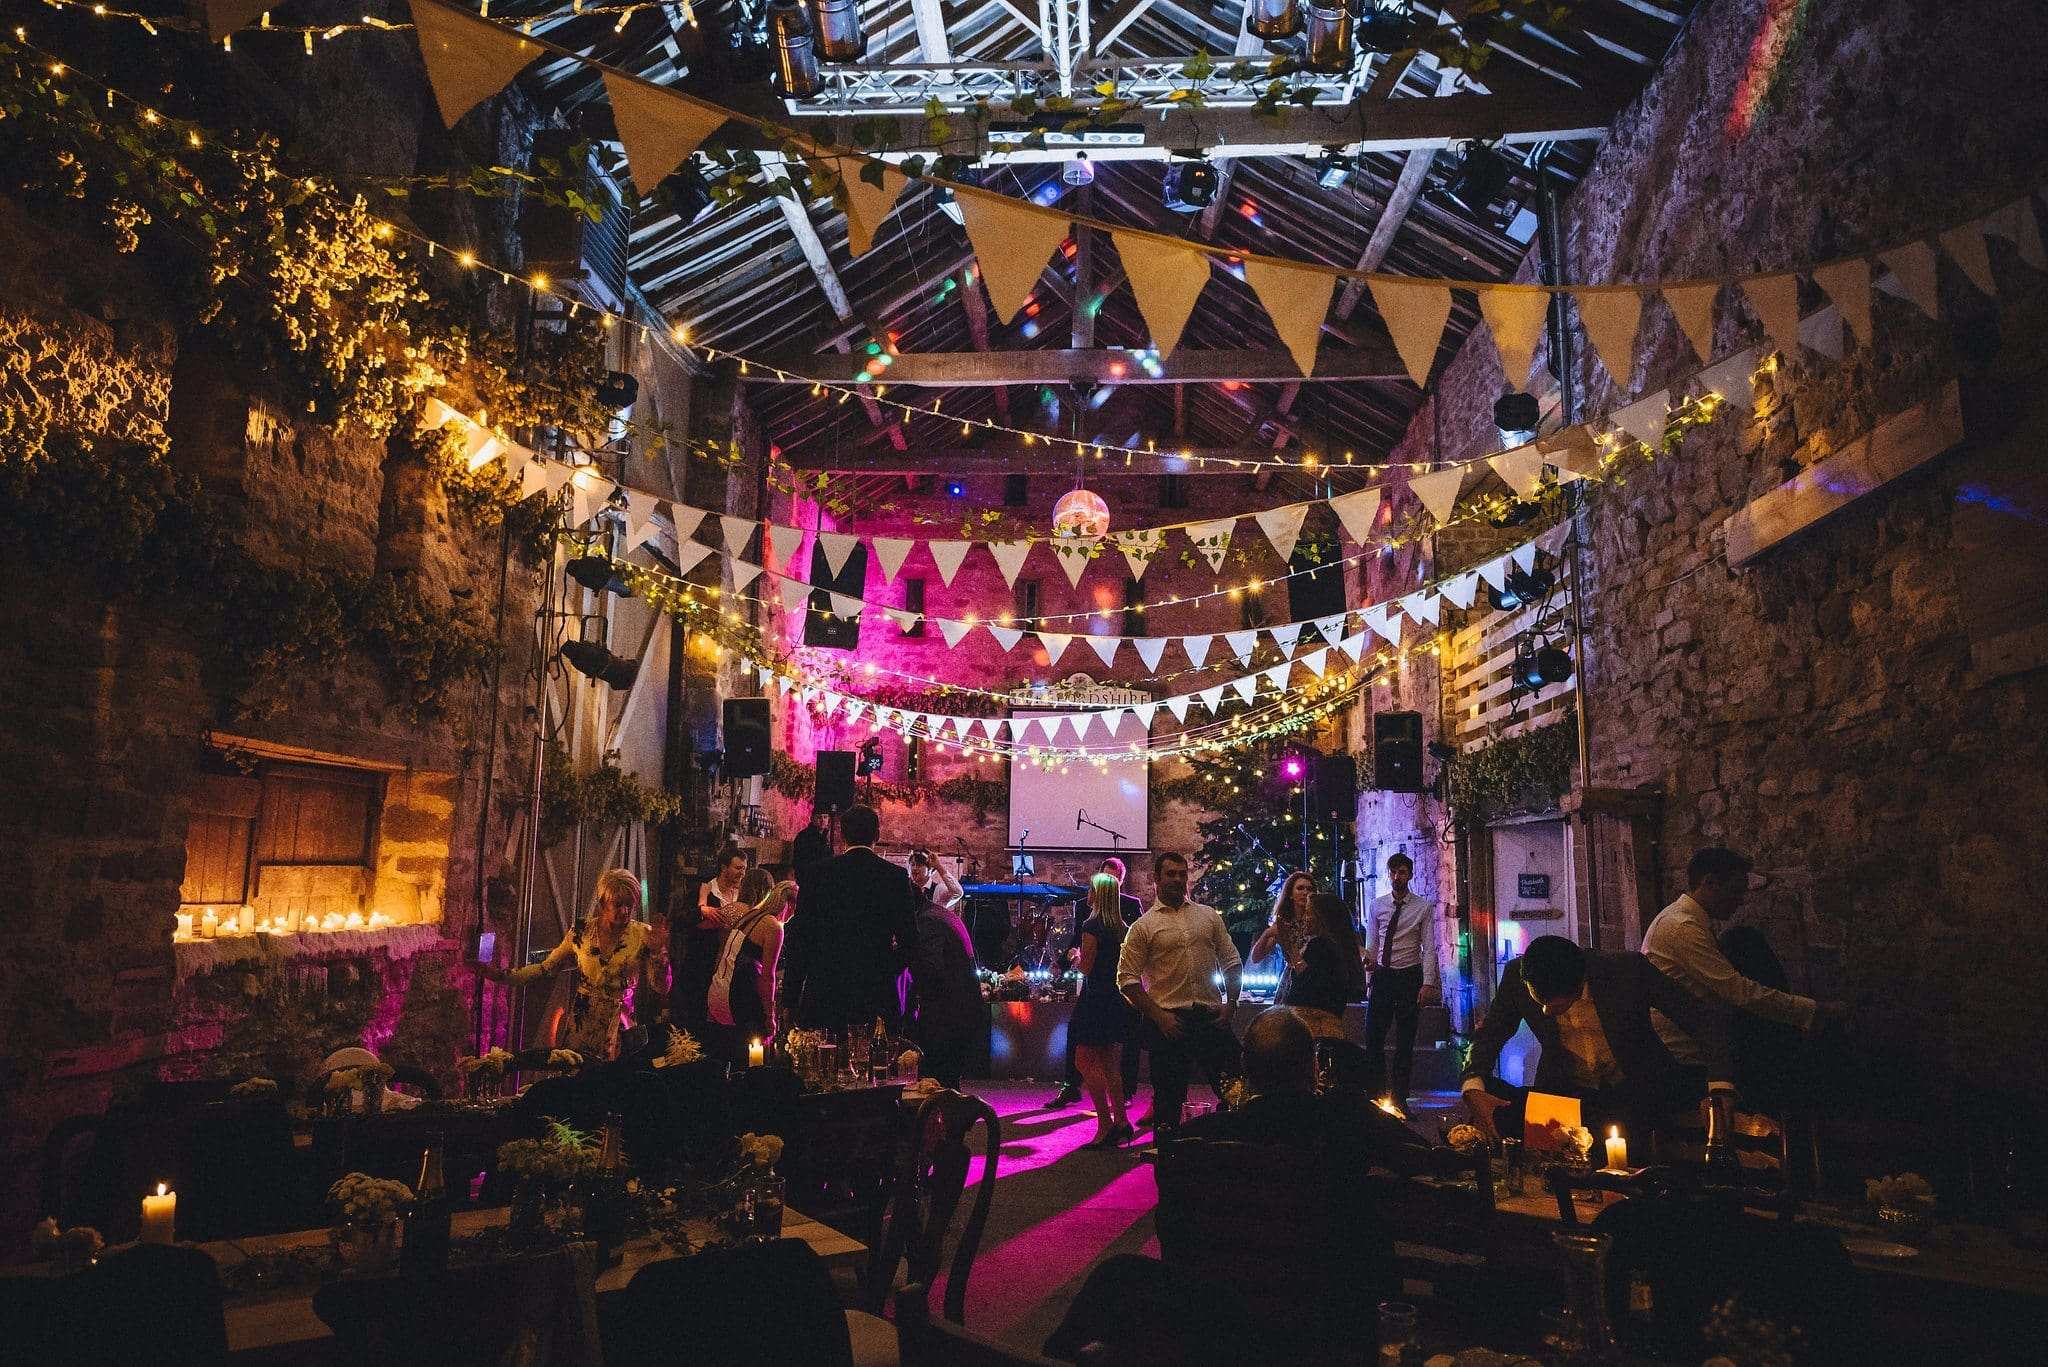 Lyde court winter wedding decorated with bunting and lights